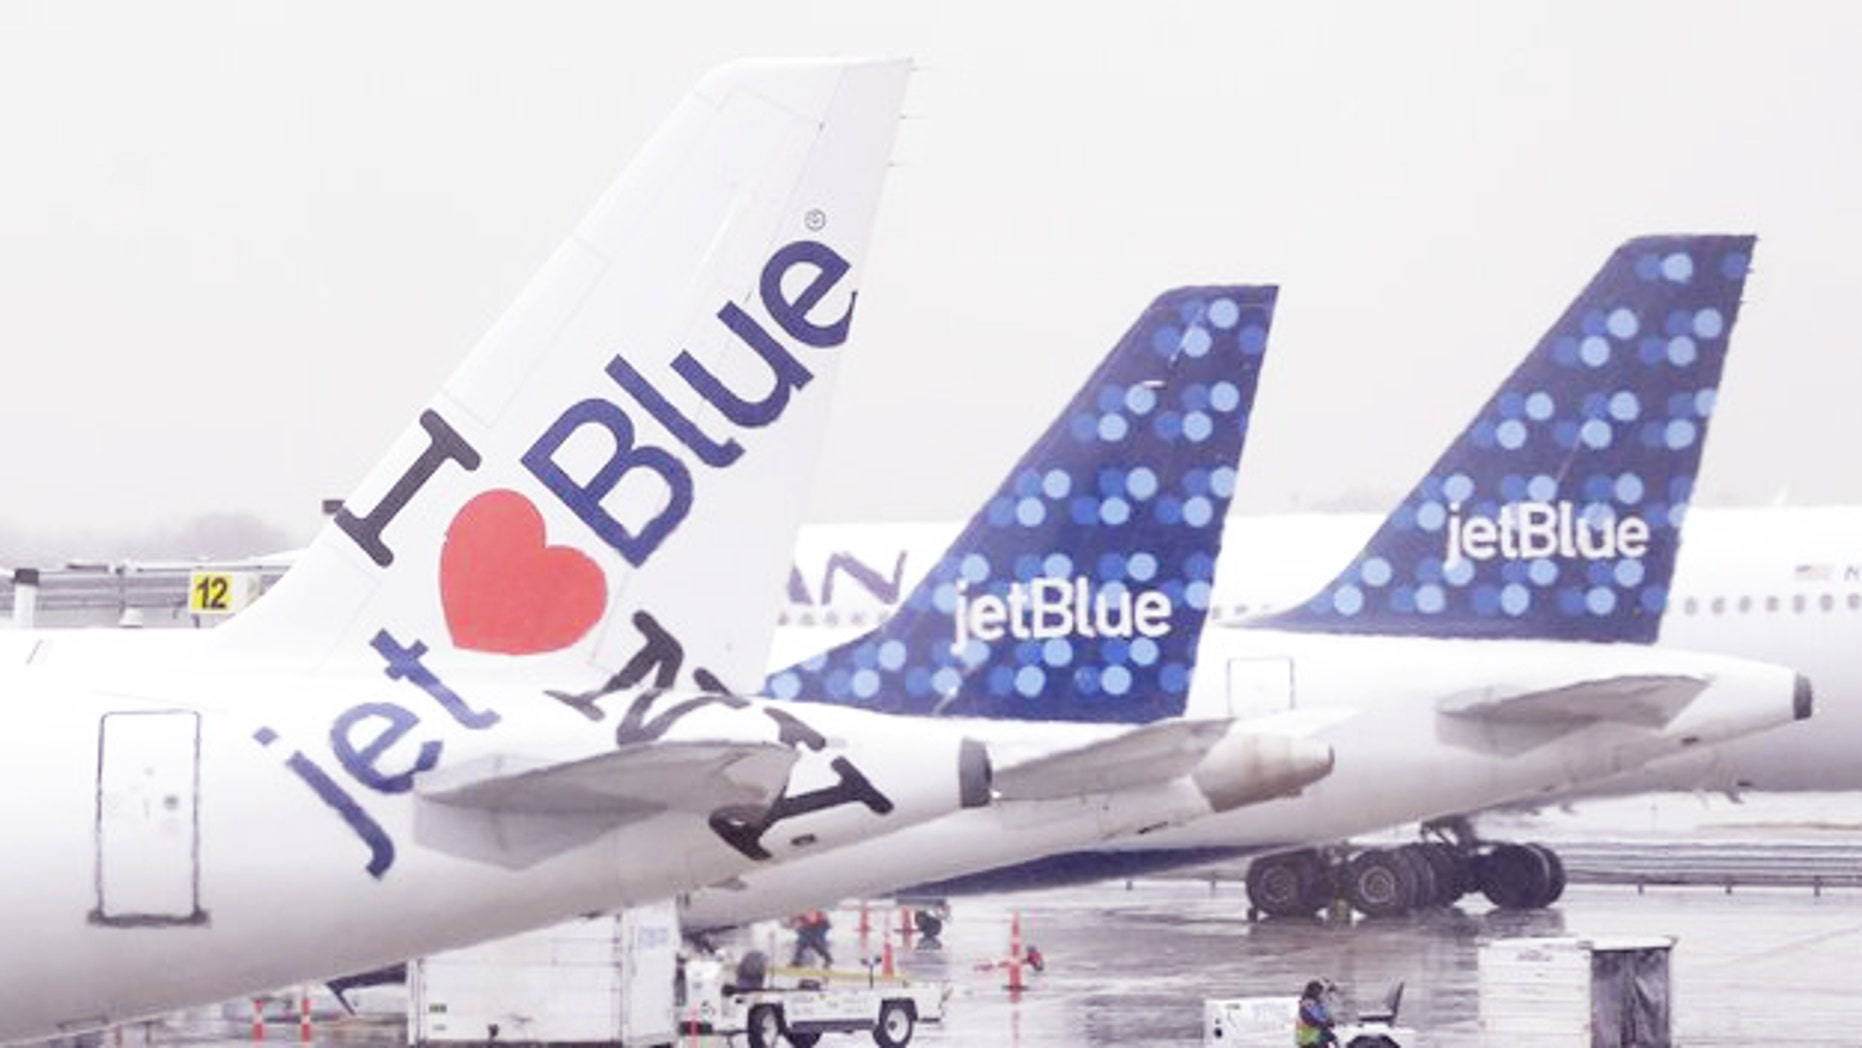 JetBlue is offering free flights and waiving fees to immediate family members of the Orlando nightclub shooting victims.